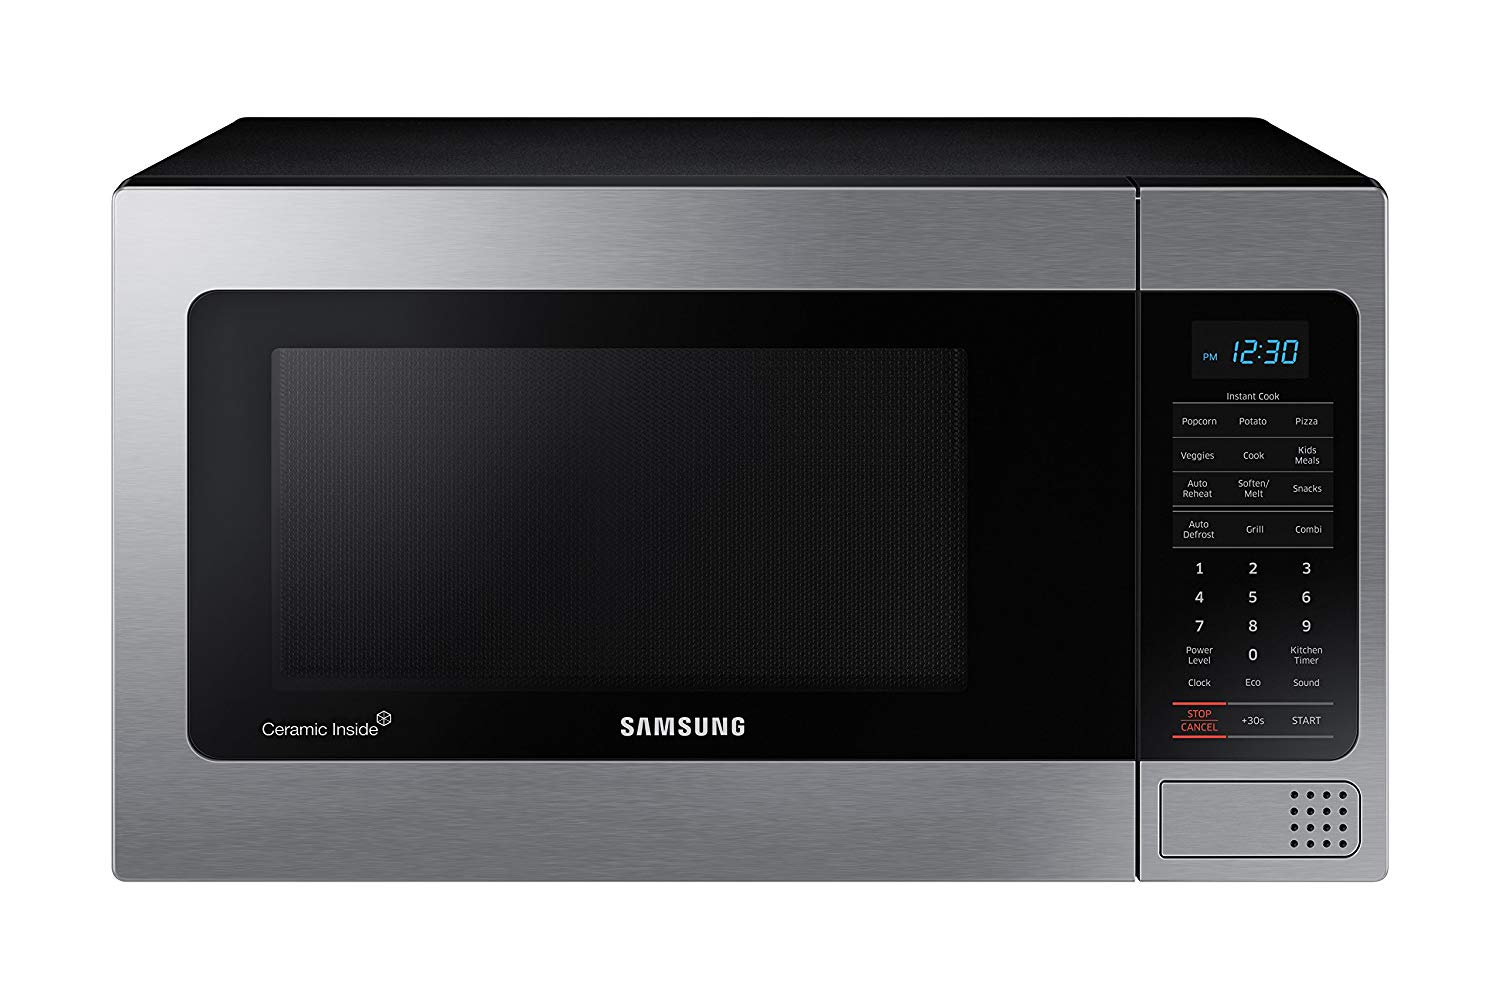 Samsung MG11H2020CT 1.1 cu. ft. Countertop Grill Microwave Oven